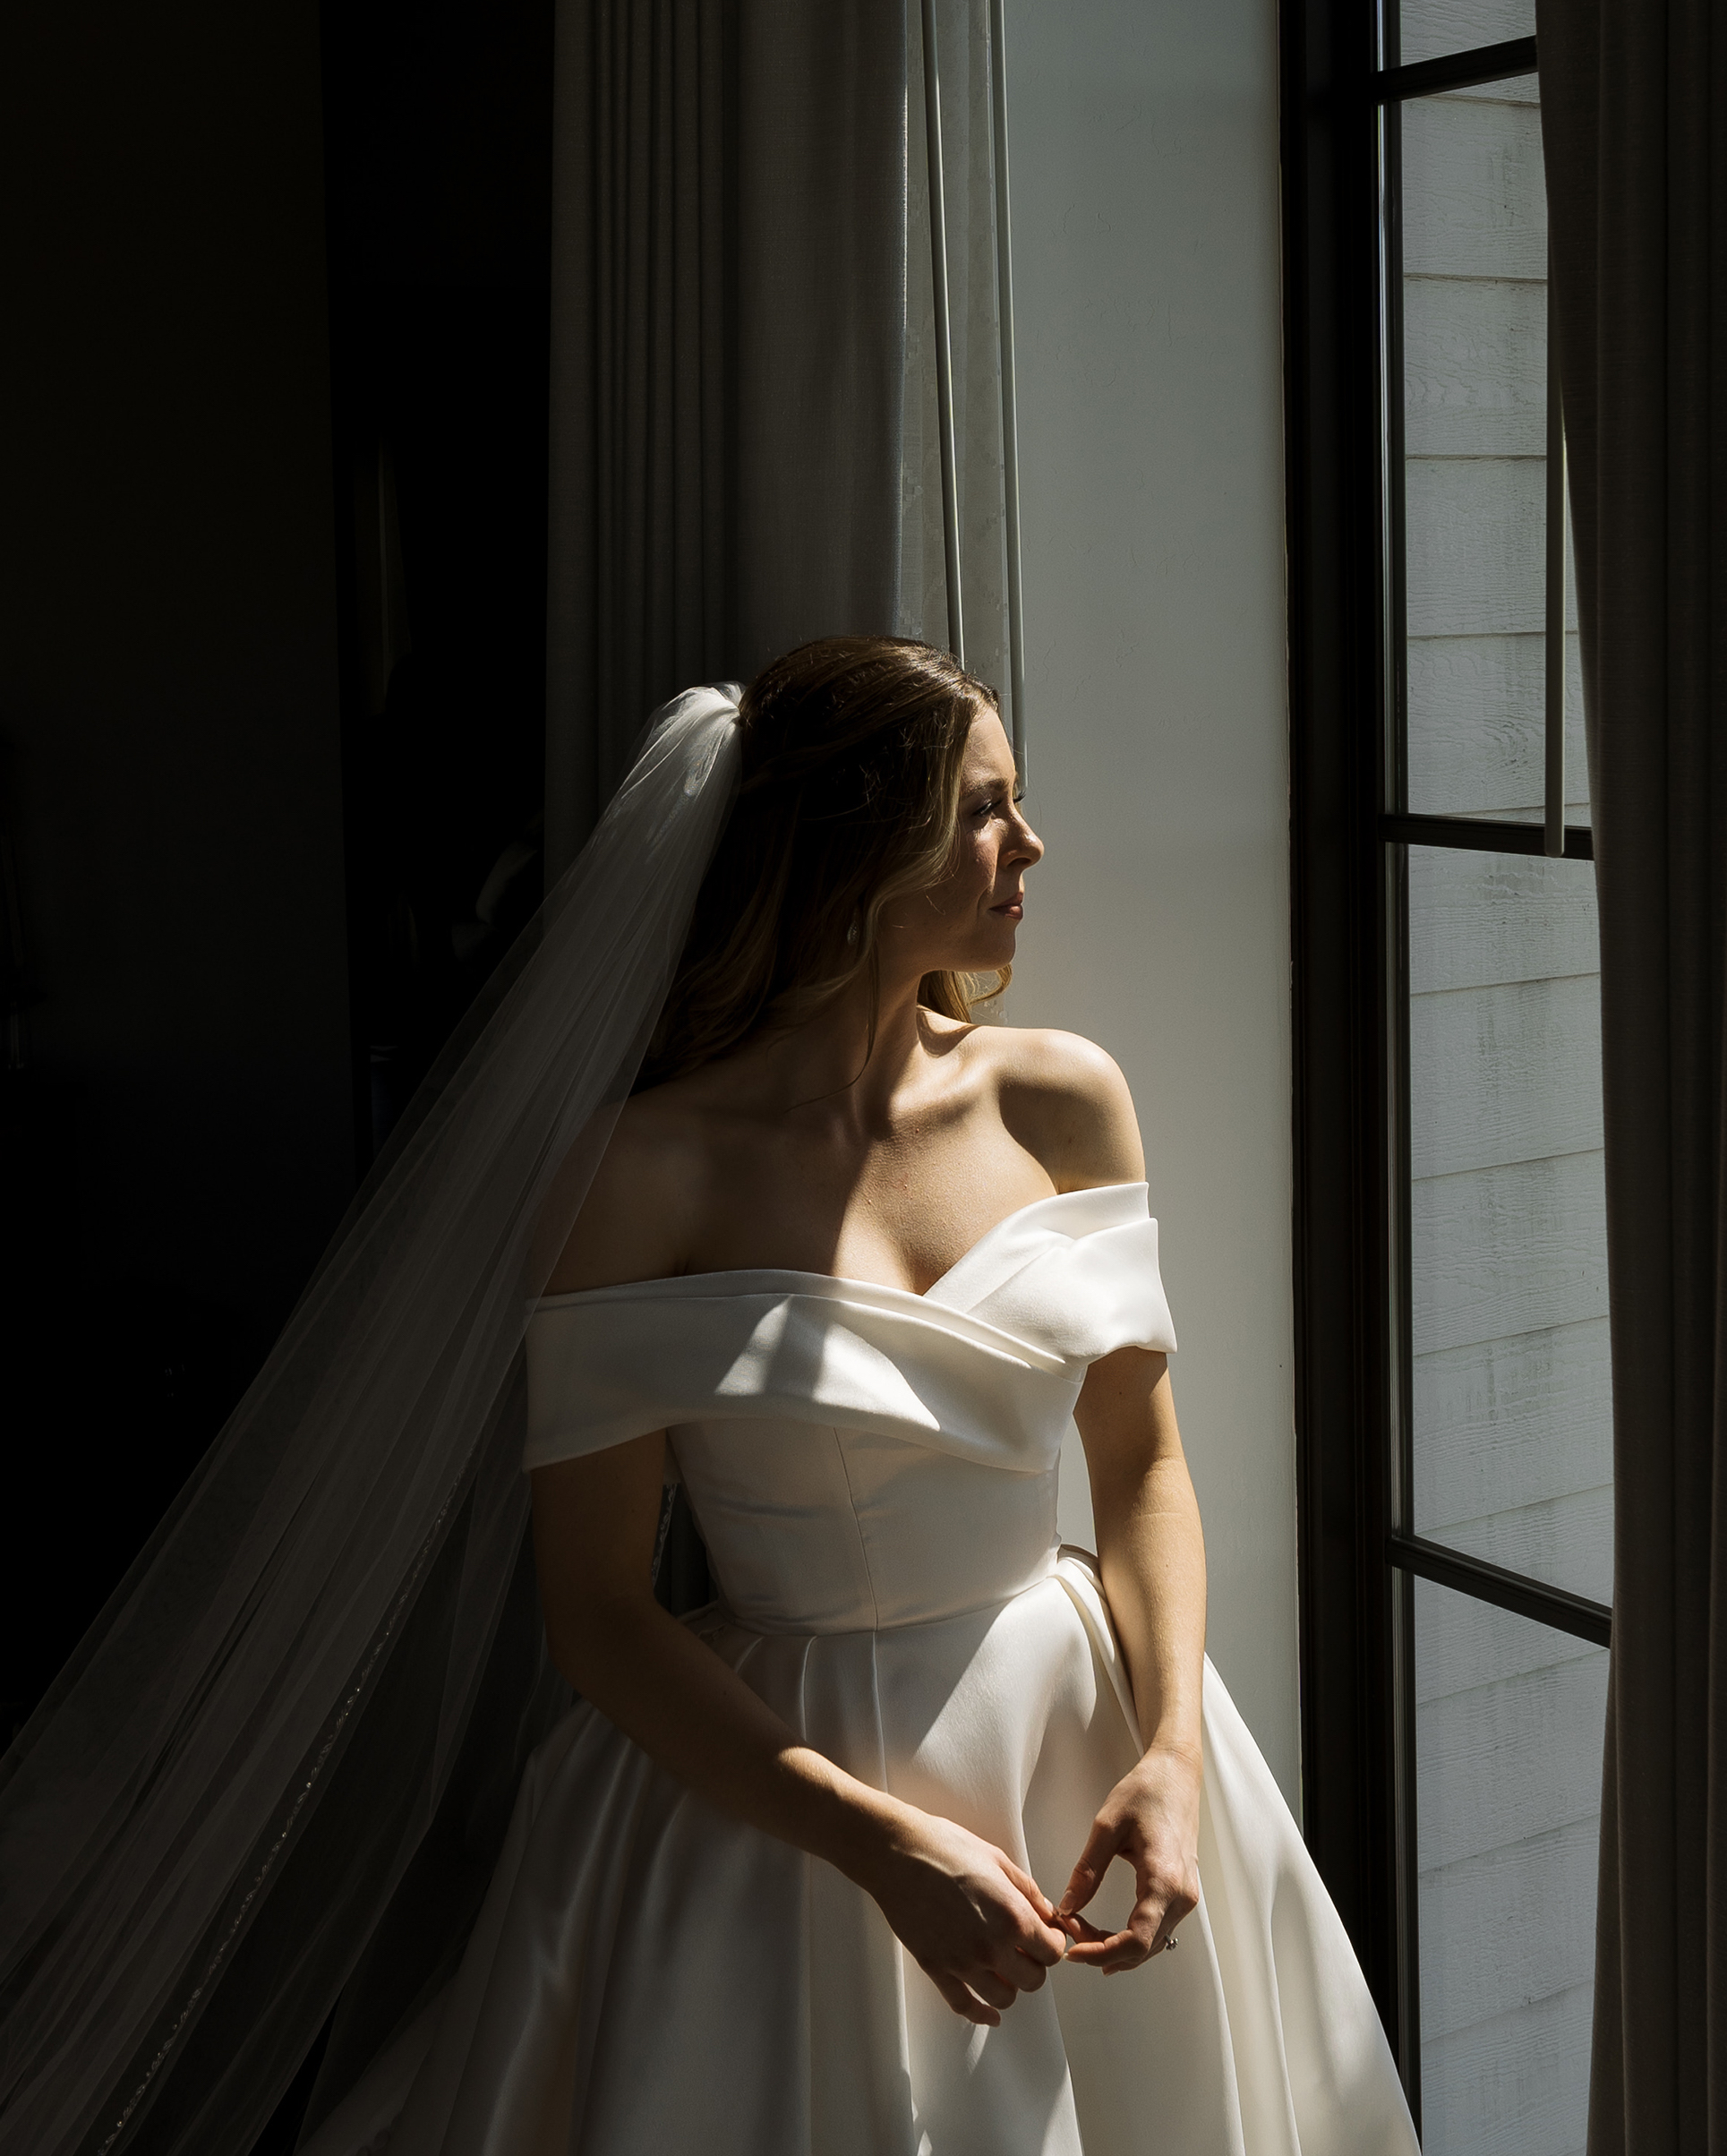 The bride is looking out the window in her wedding gown.